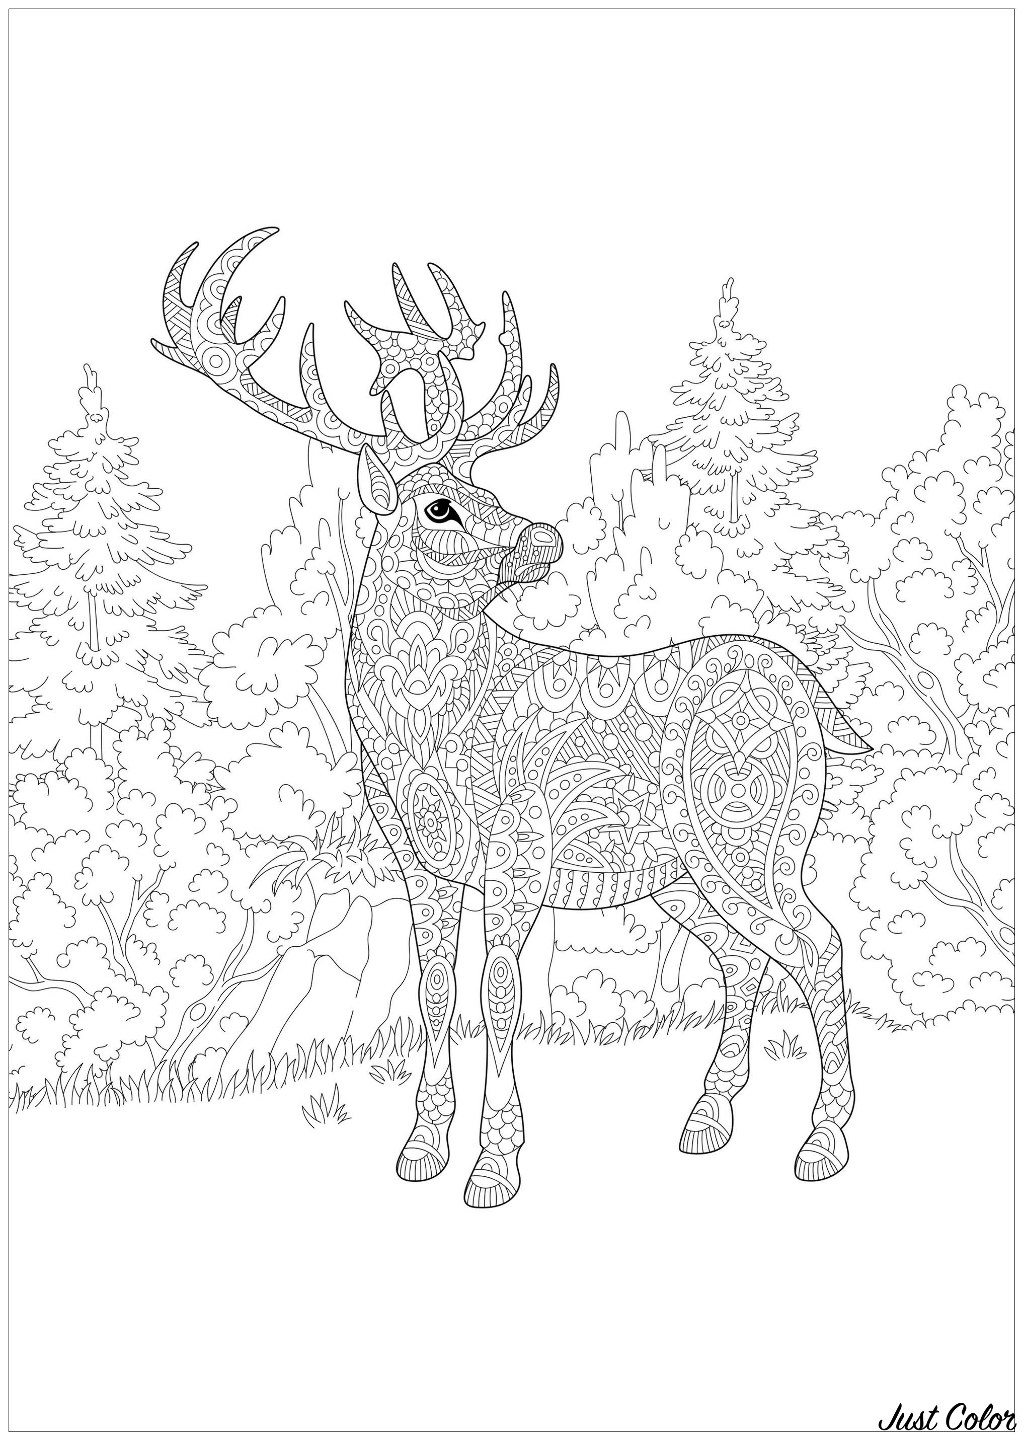 A majestic deer in the forest : a lot of abstract details to color